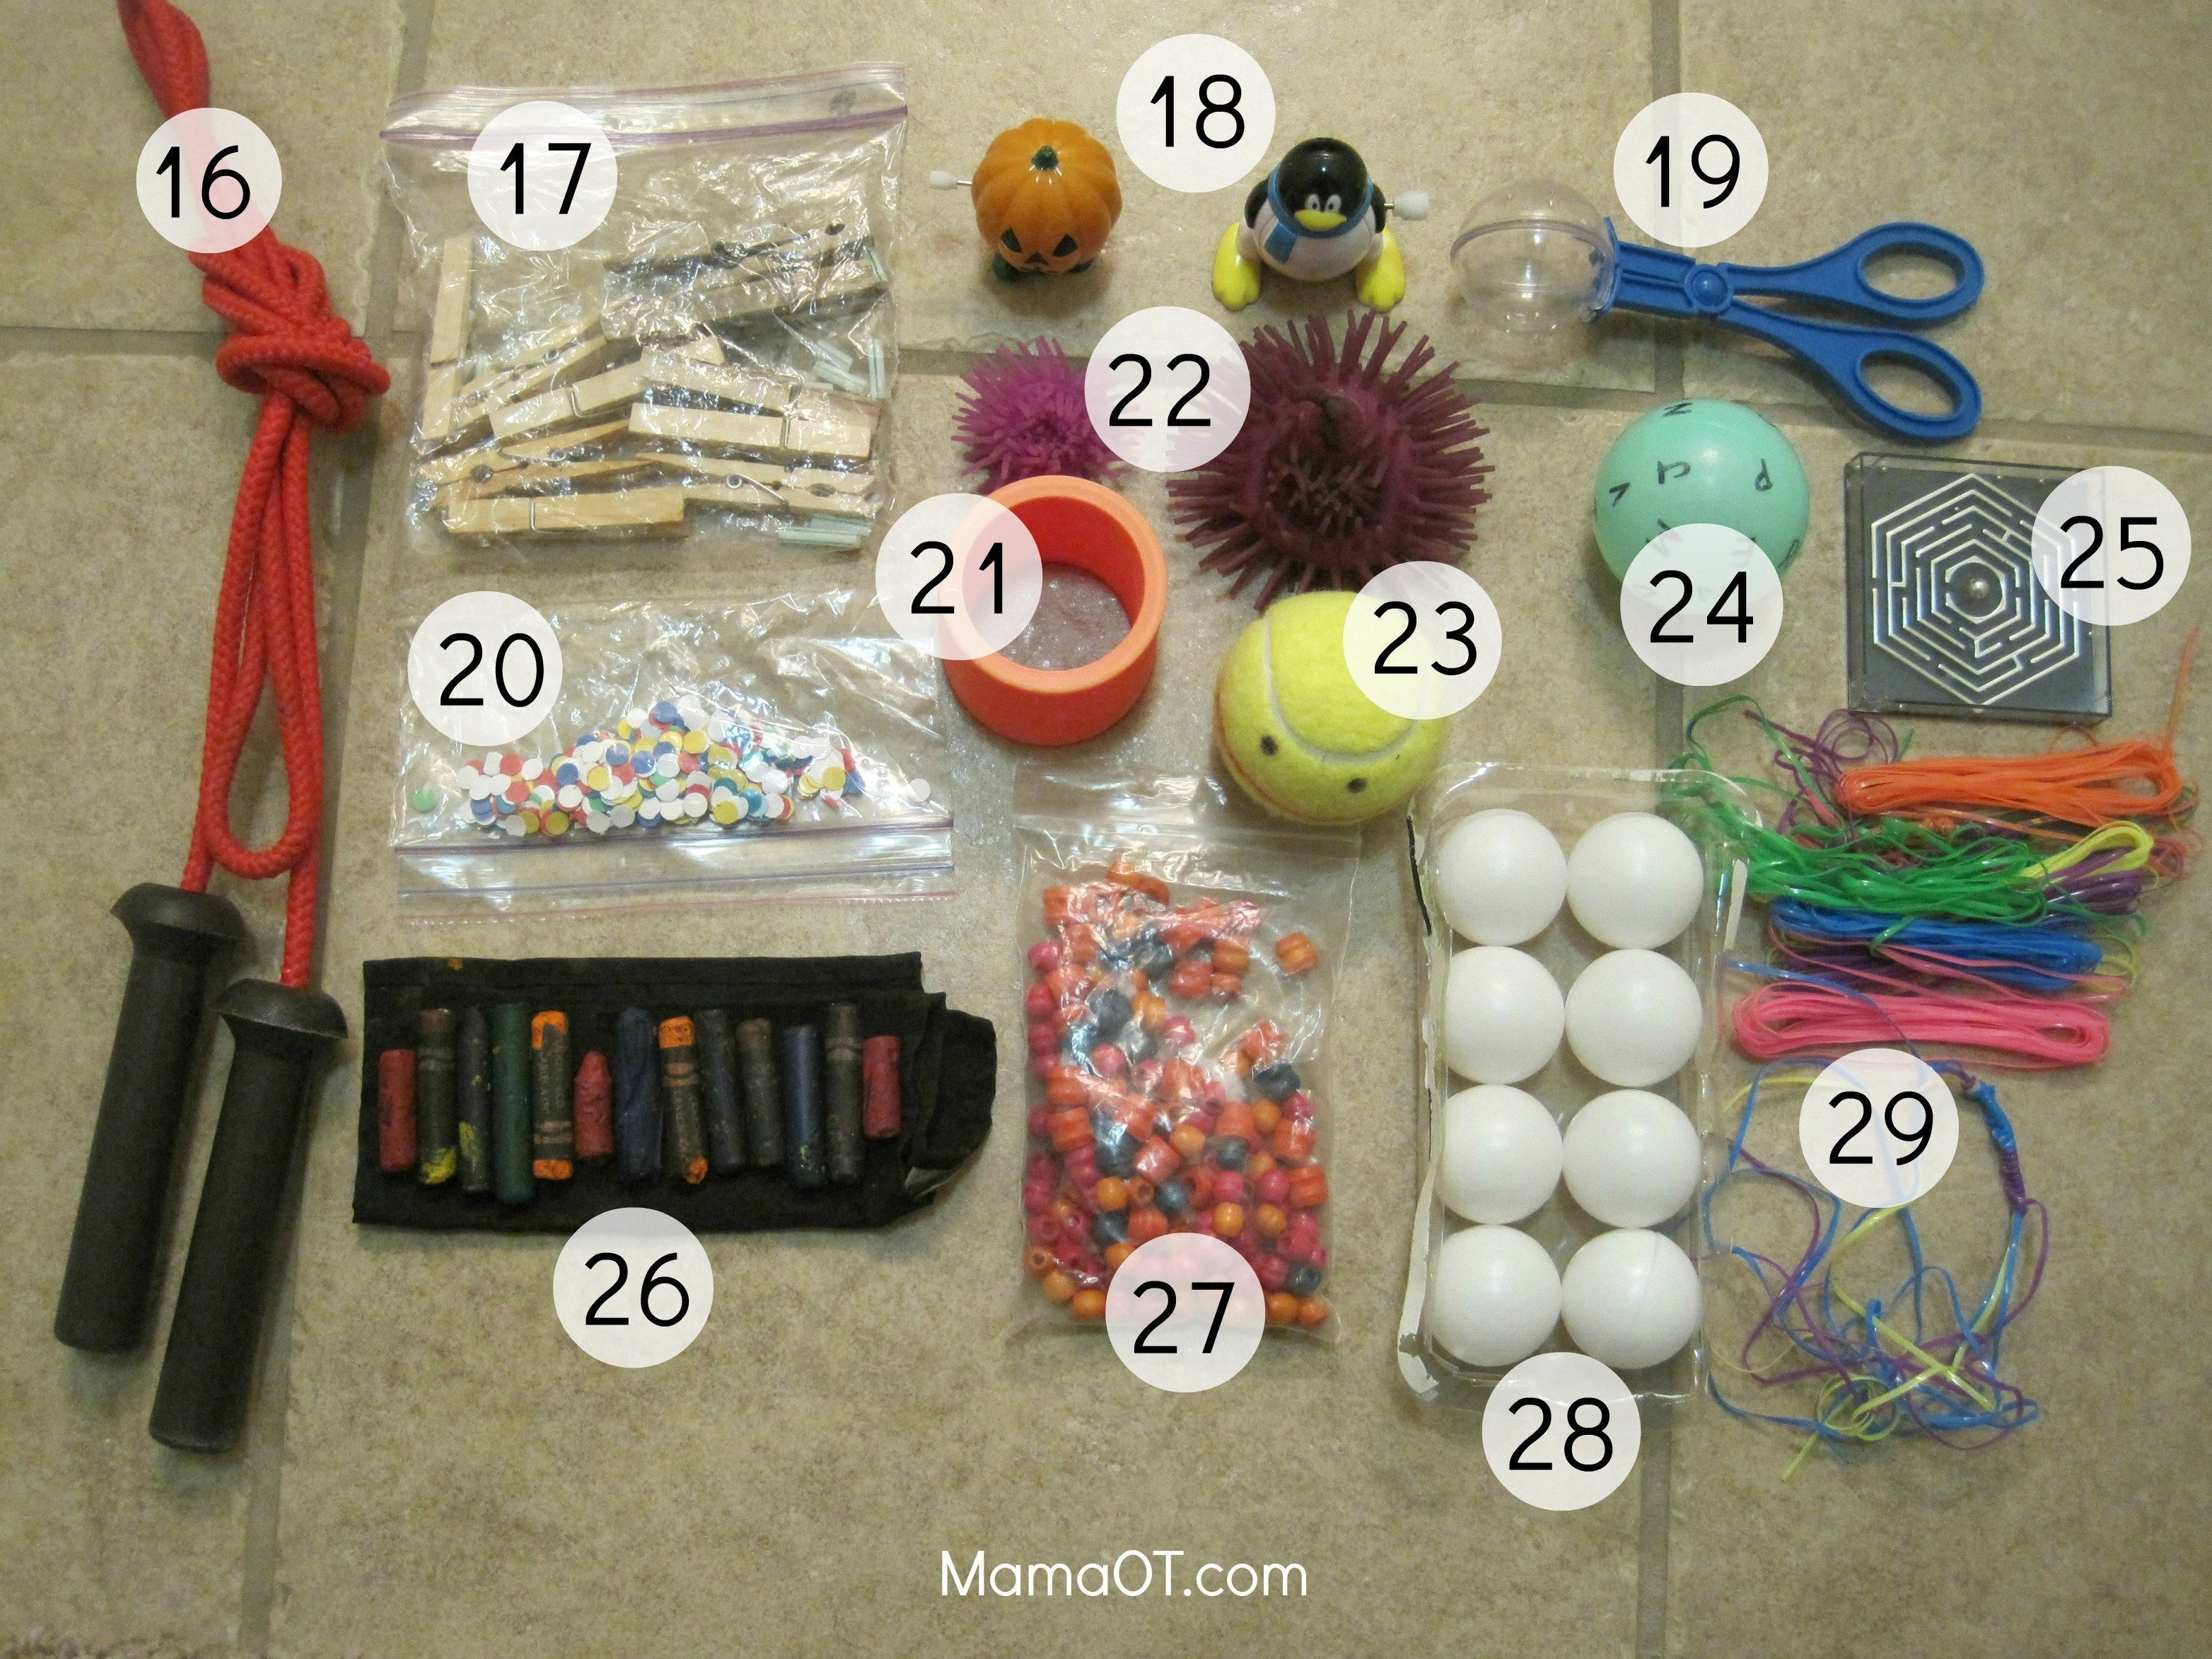 10 Unique Occupational Therapy Activity Ideas For Adults a mom occupational therapist reveals 50 items in her box to help 1 2020